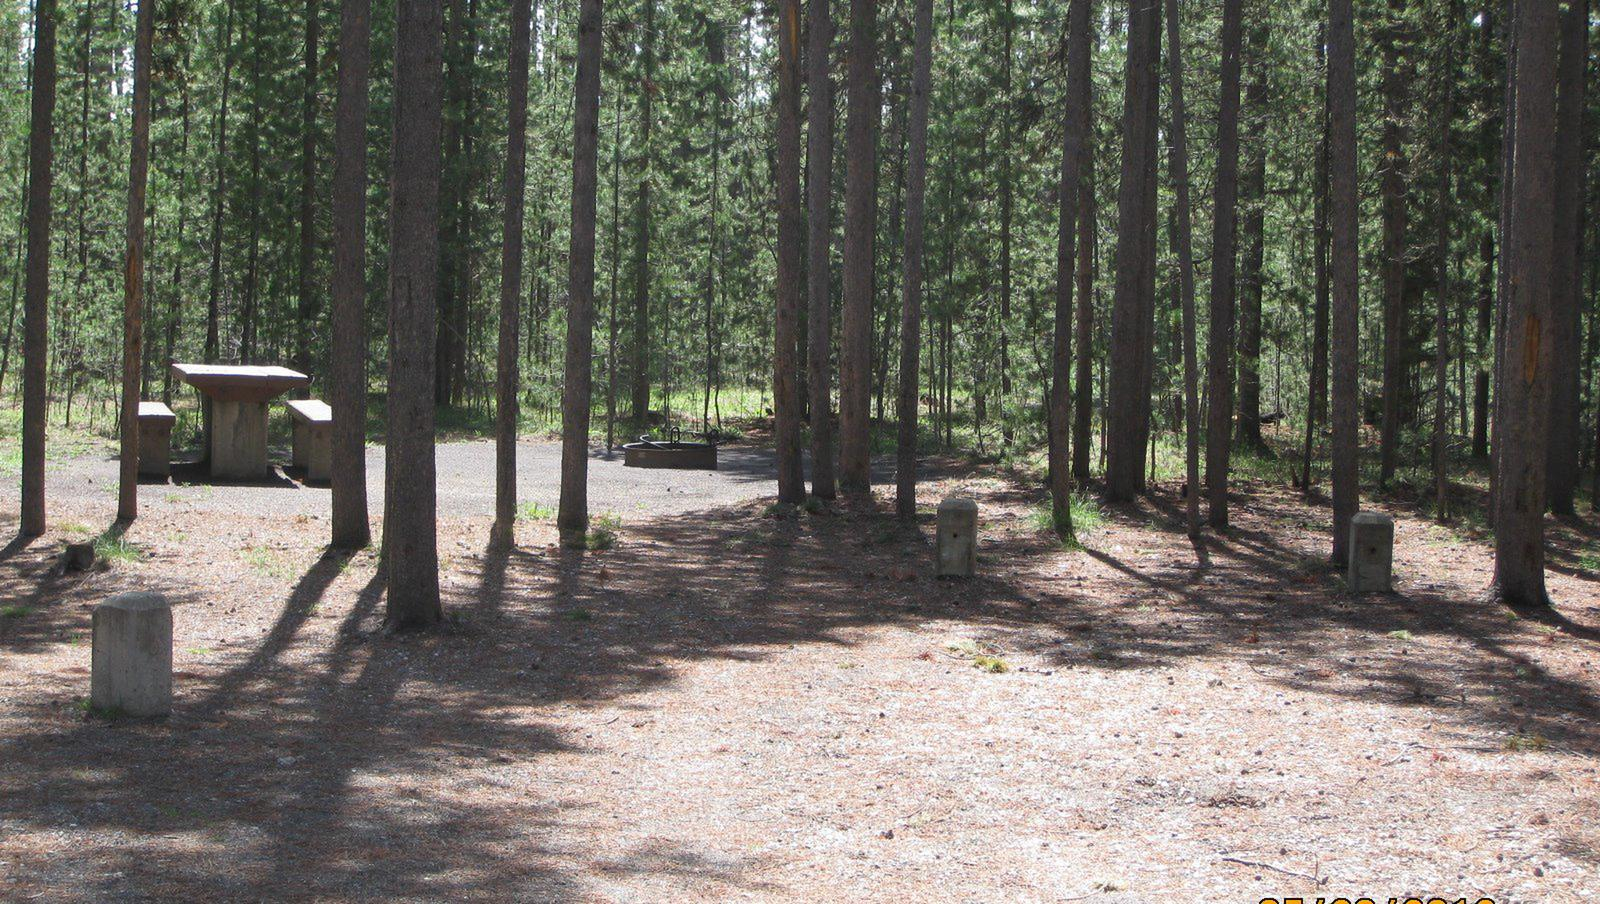 Site C16, surrounded by pine trees, picnic table & fire ringSite C16